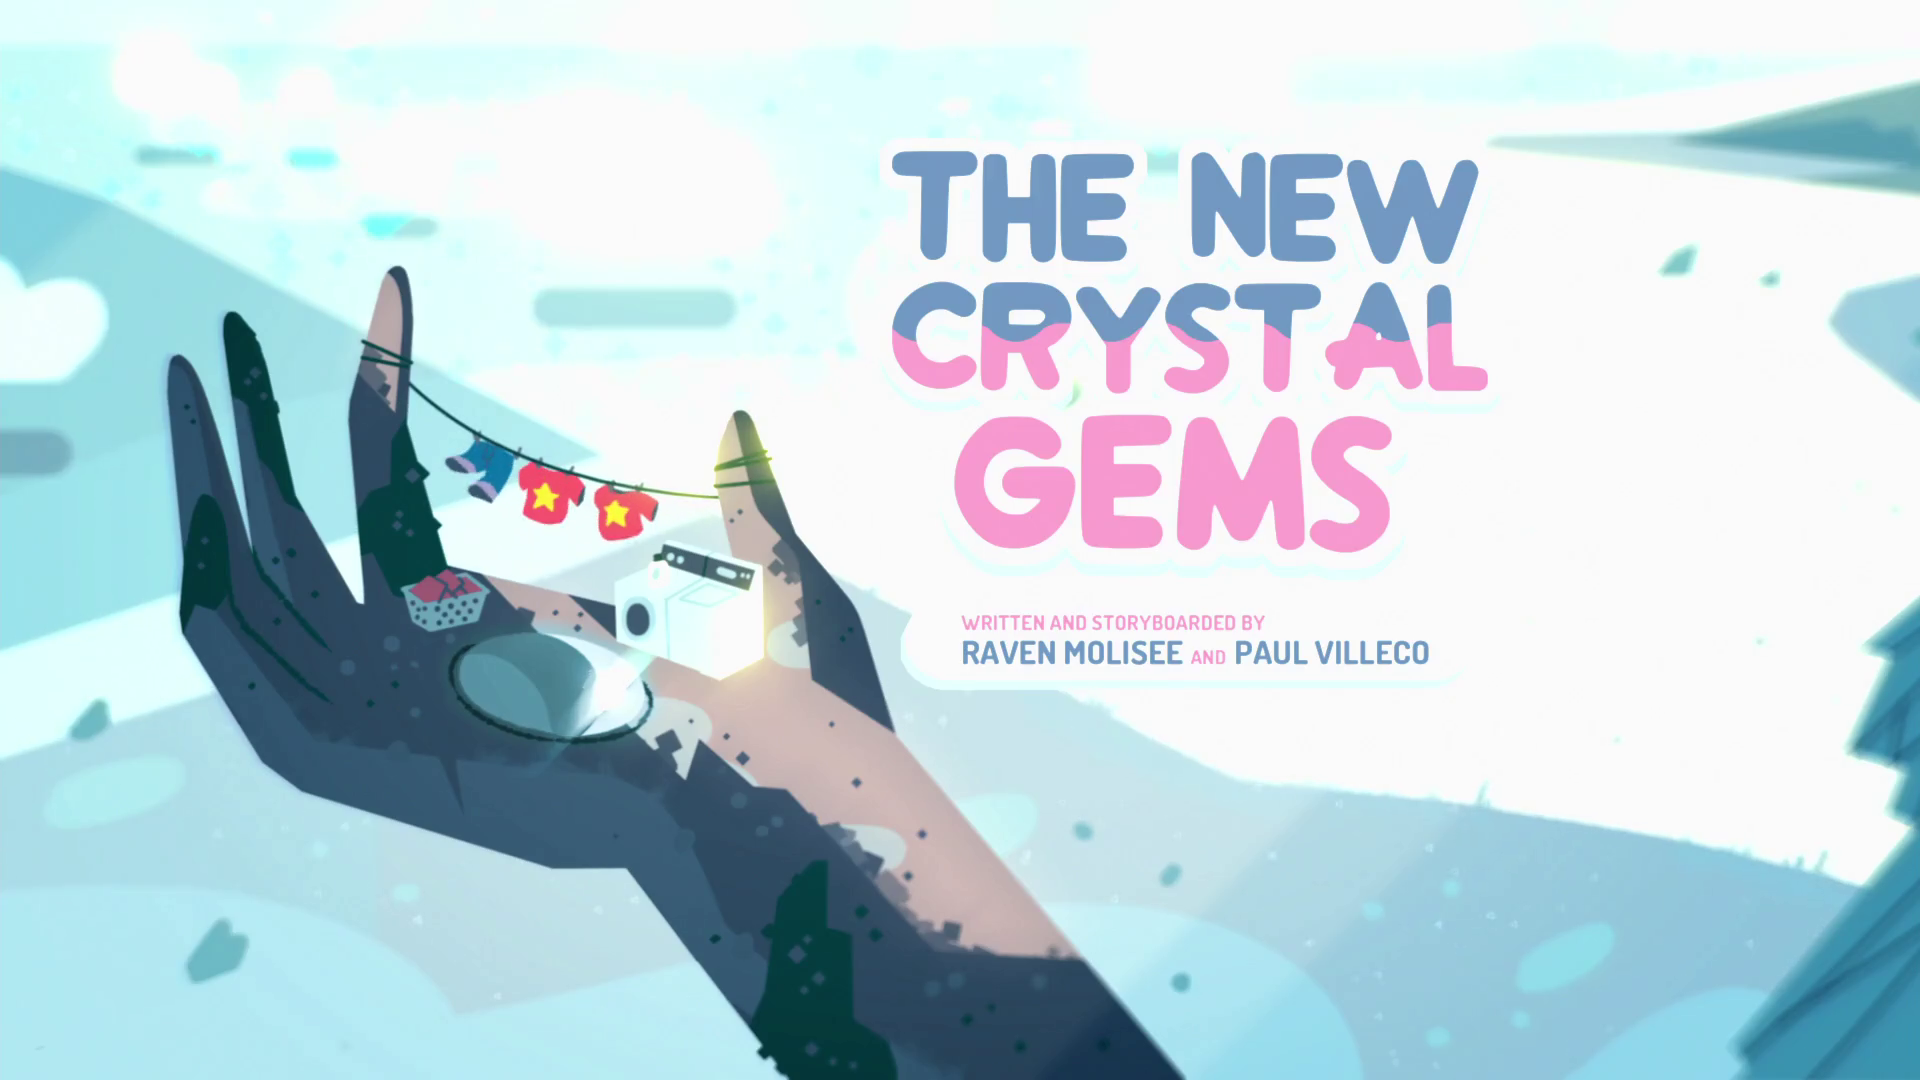 Steven Universo - As Novas Crystal Gems